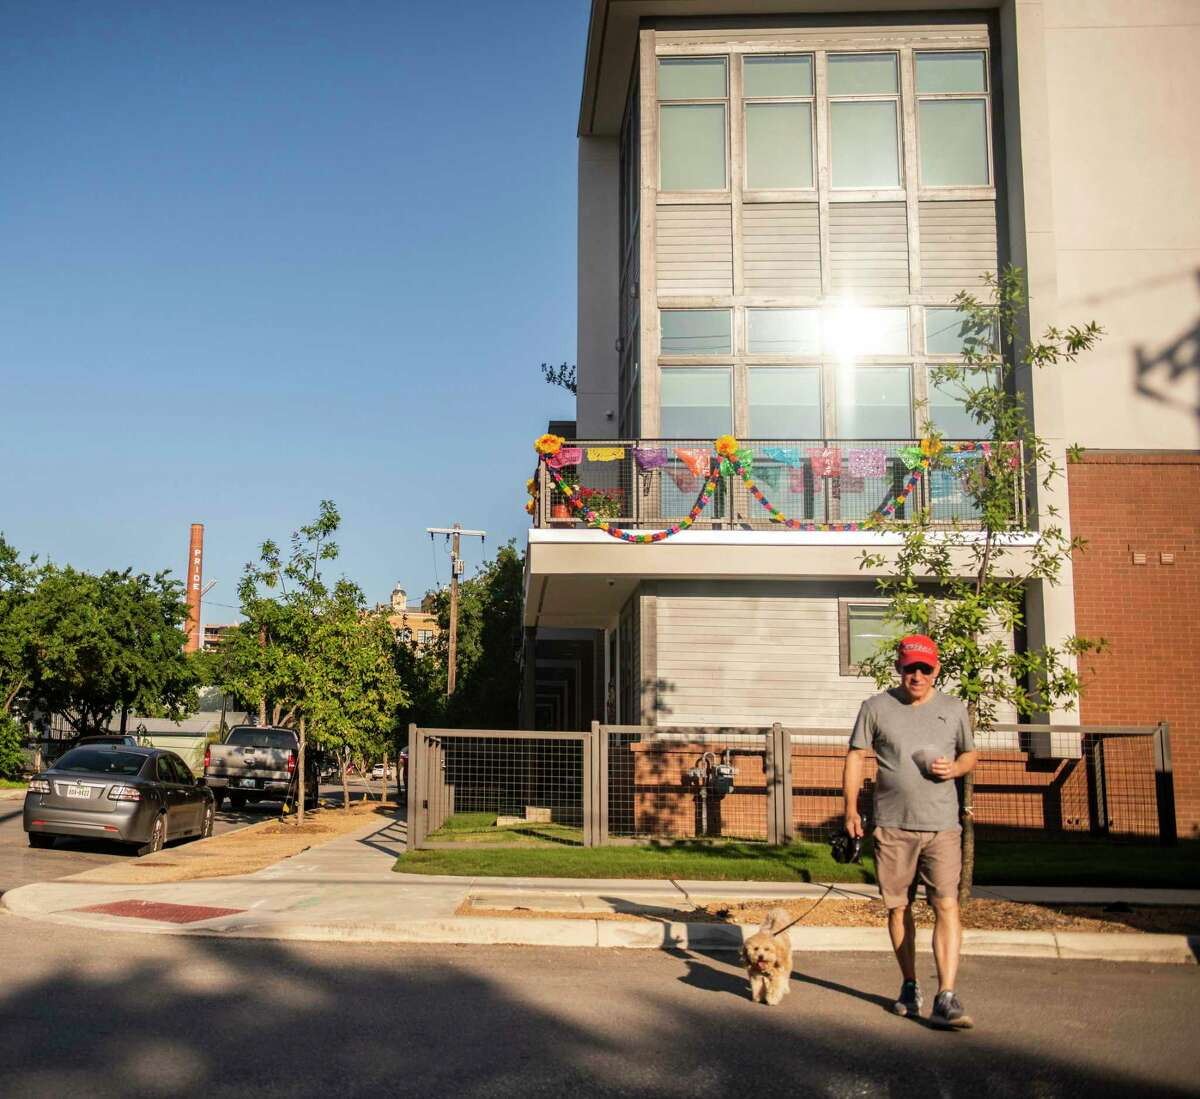 Potentially requiring an economic impact analysis for proposed amendments to the city's Unified Development Code could shut out neighborhood groups and community activists from the process at a time when they are experiencing tremendous pressure from gentrification.